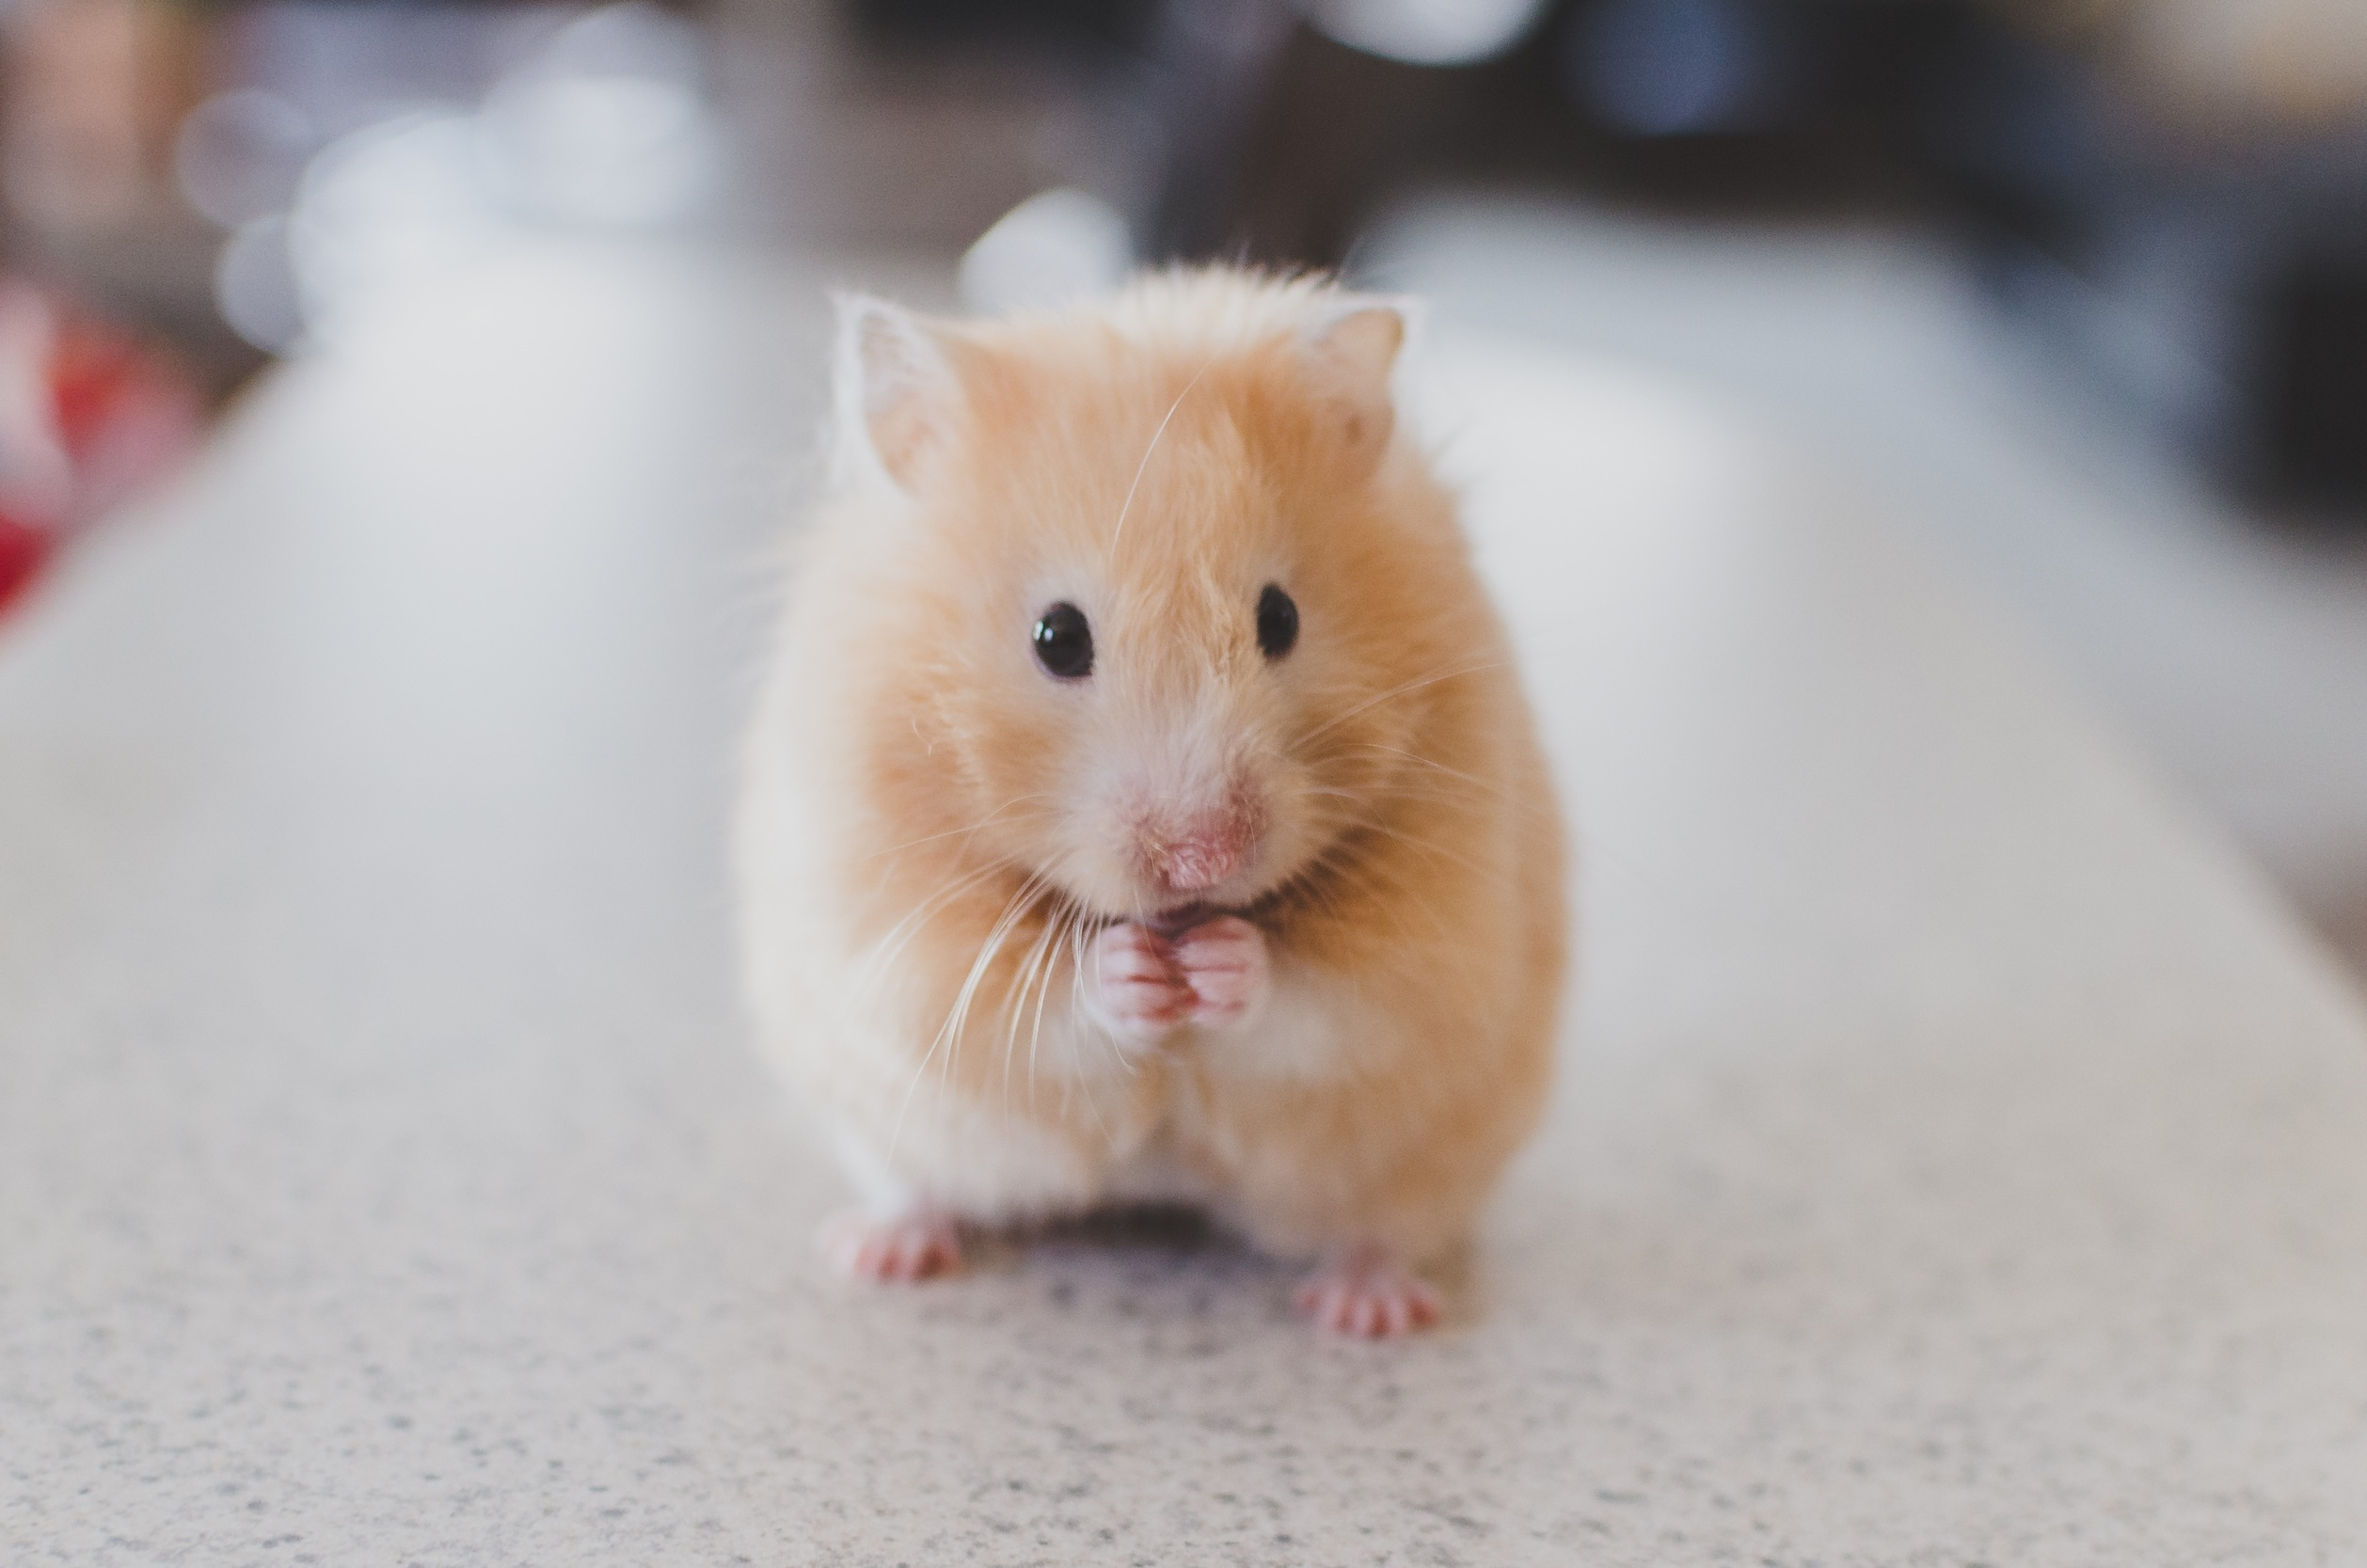 123277 download wallpaper Animals, Hamster, Rodent, Nice, Sweetheart screensavers and pictures for free